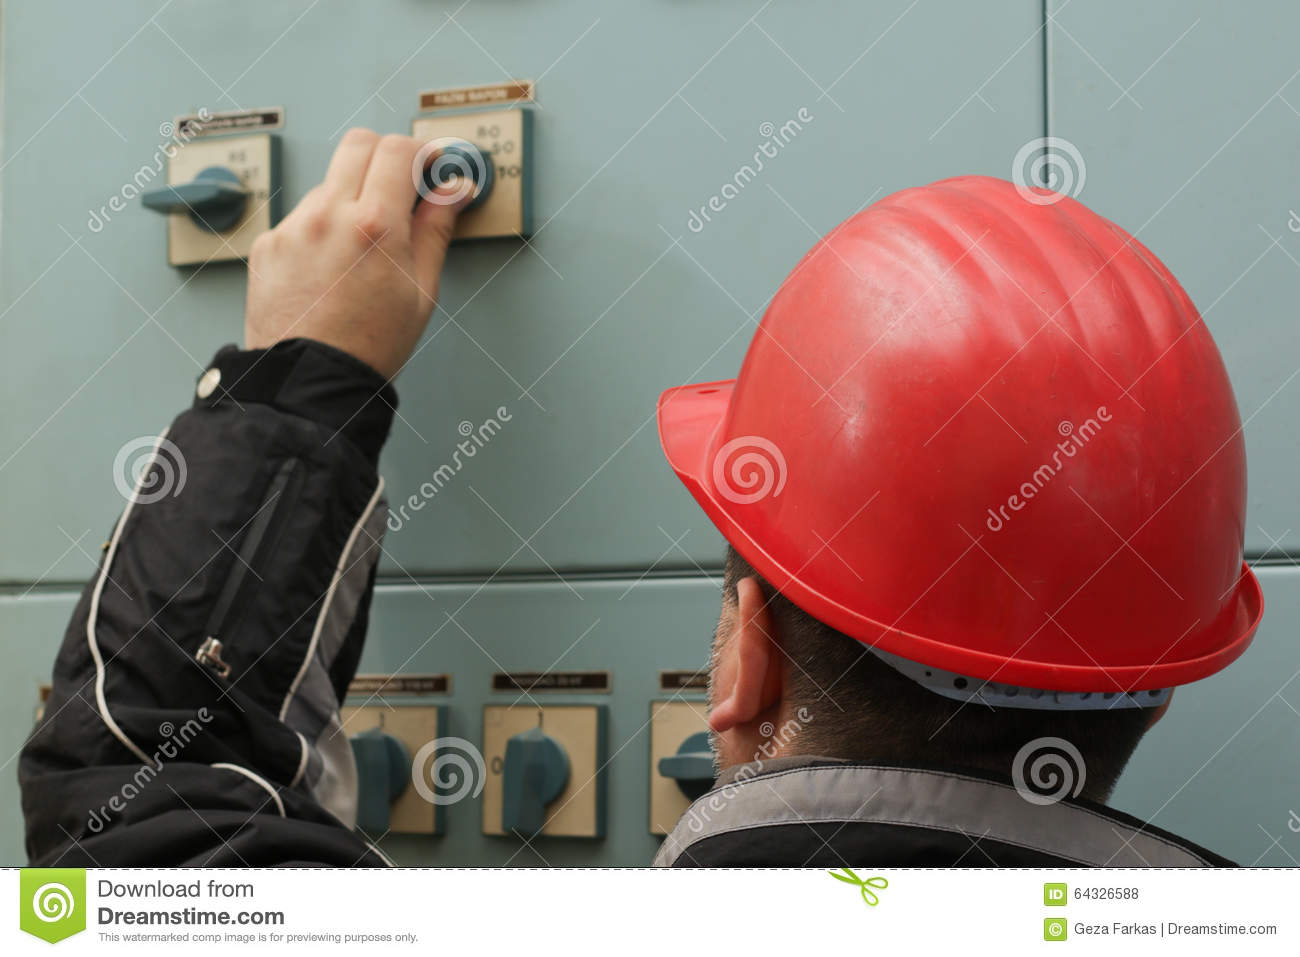 Technician with red helmet turn off the power switch